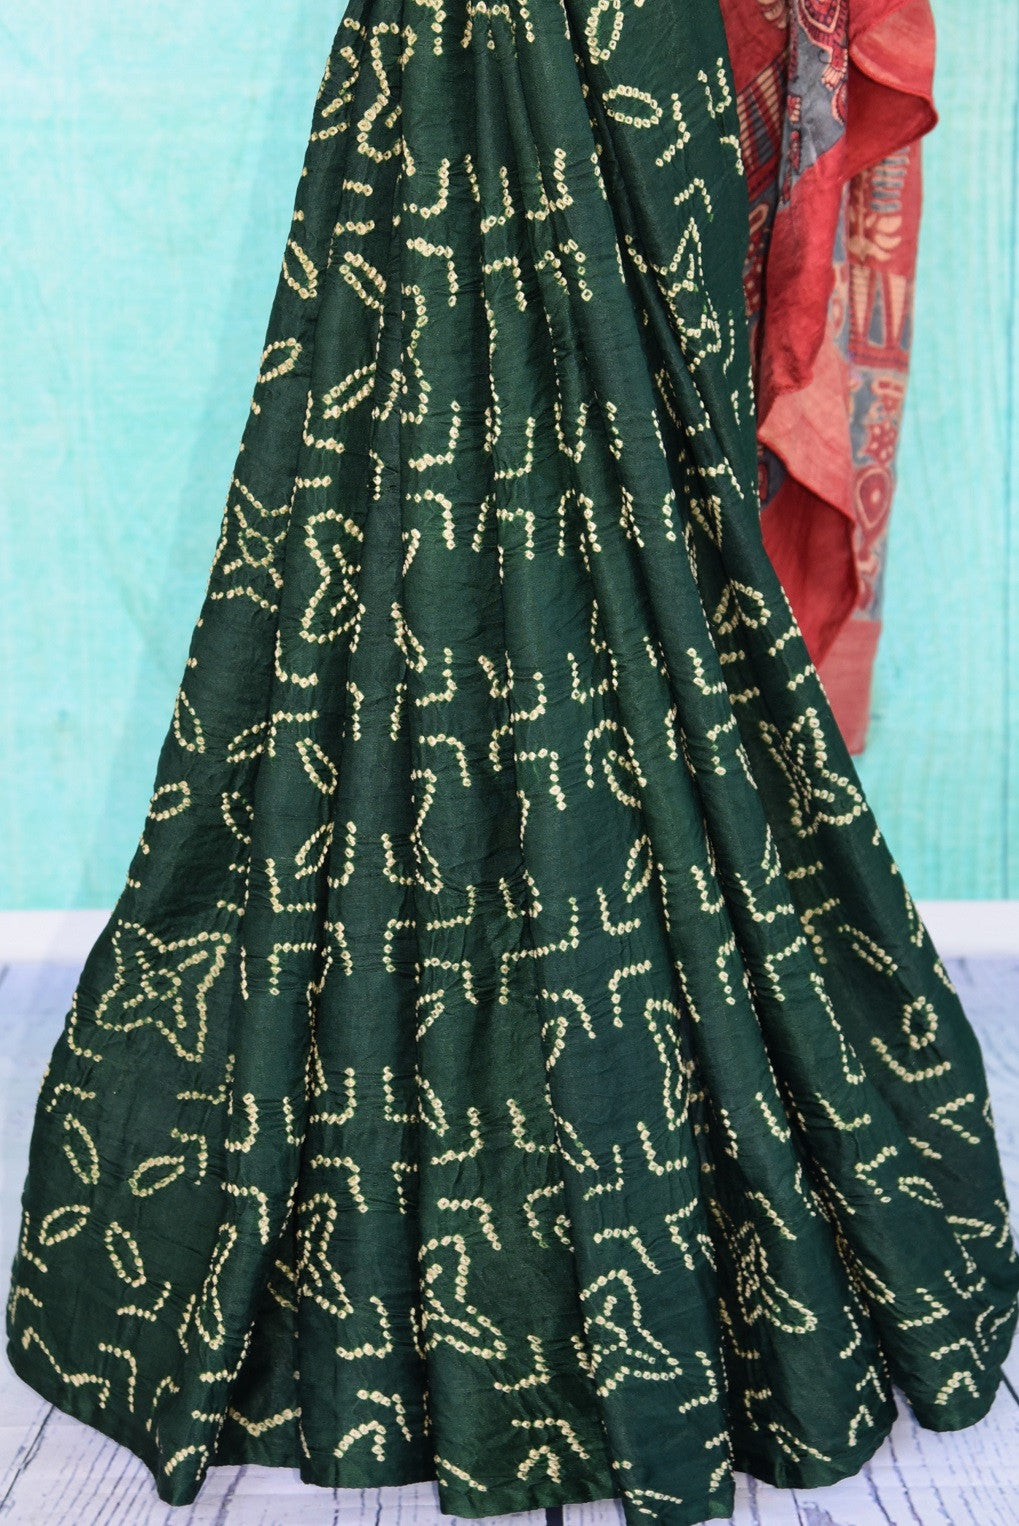 90D066 Green & beige bandhej body is teamed with multi-color ajrak printed blouse & pallu in this saree. Buy this nine yard Indian outfit online in USA at our ethnic fashion store Pure Elegance.